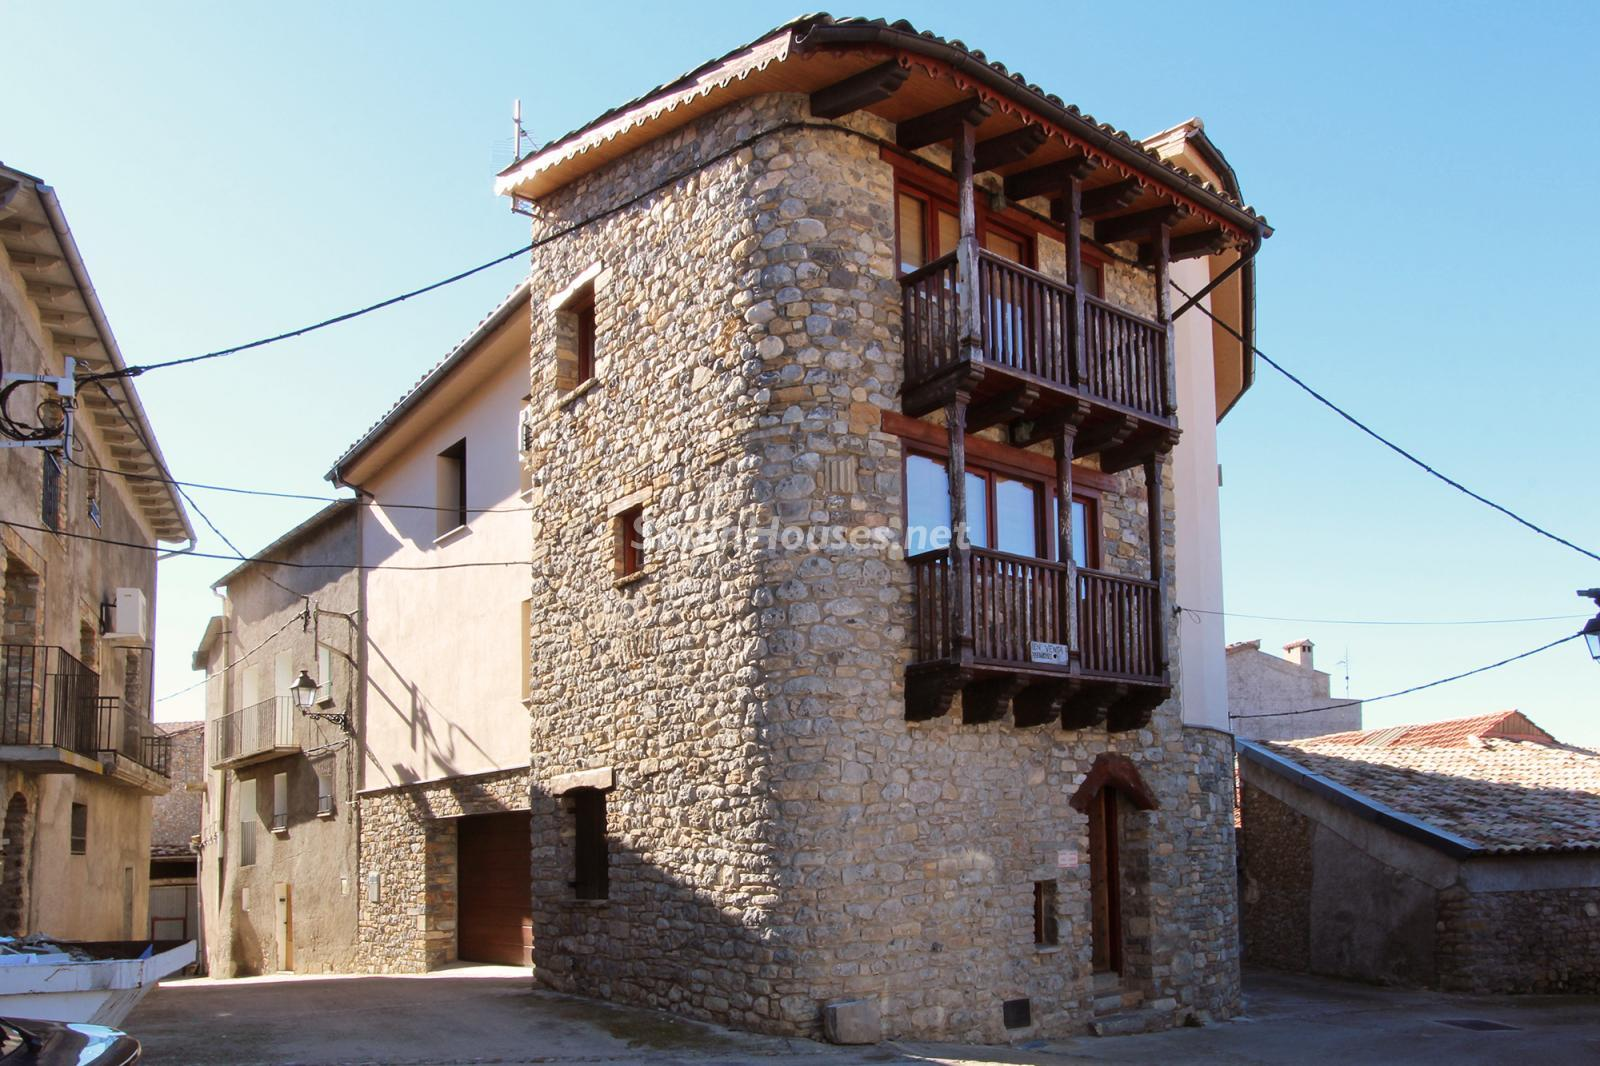 House for sale in Conca de Dalt - Country Houses for Sale in Northern Spain